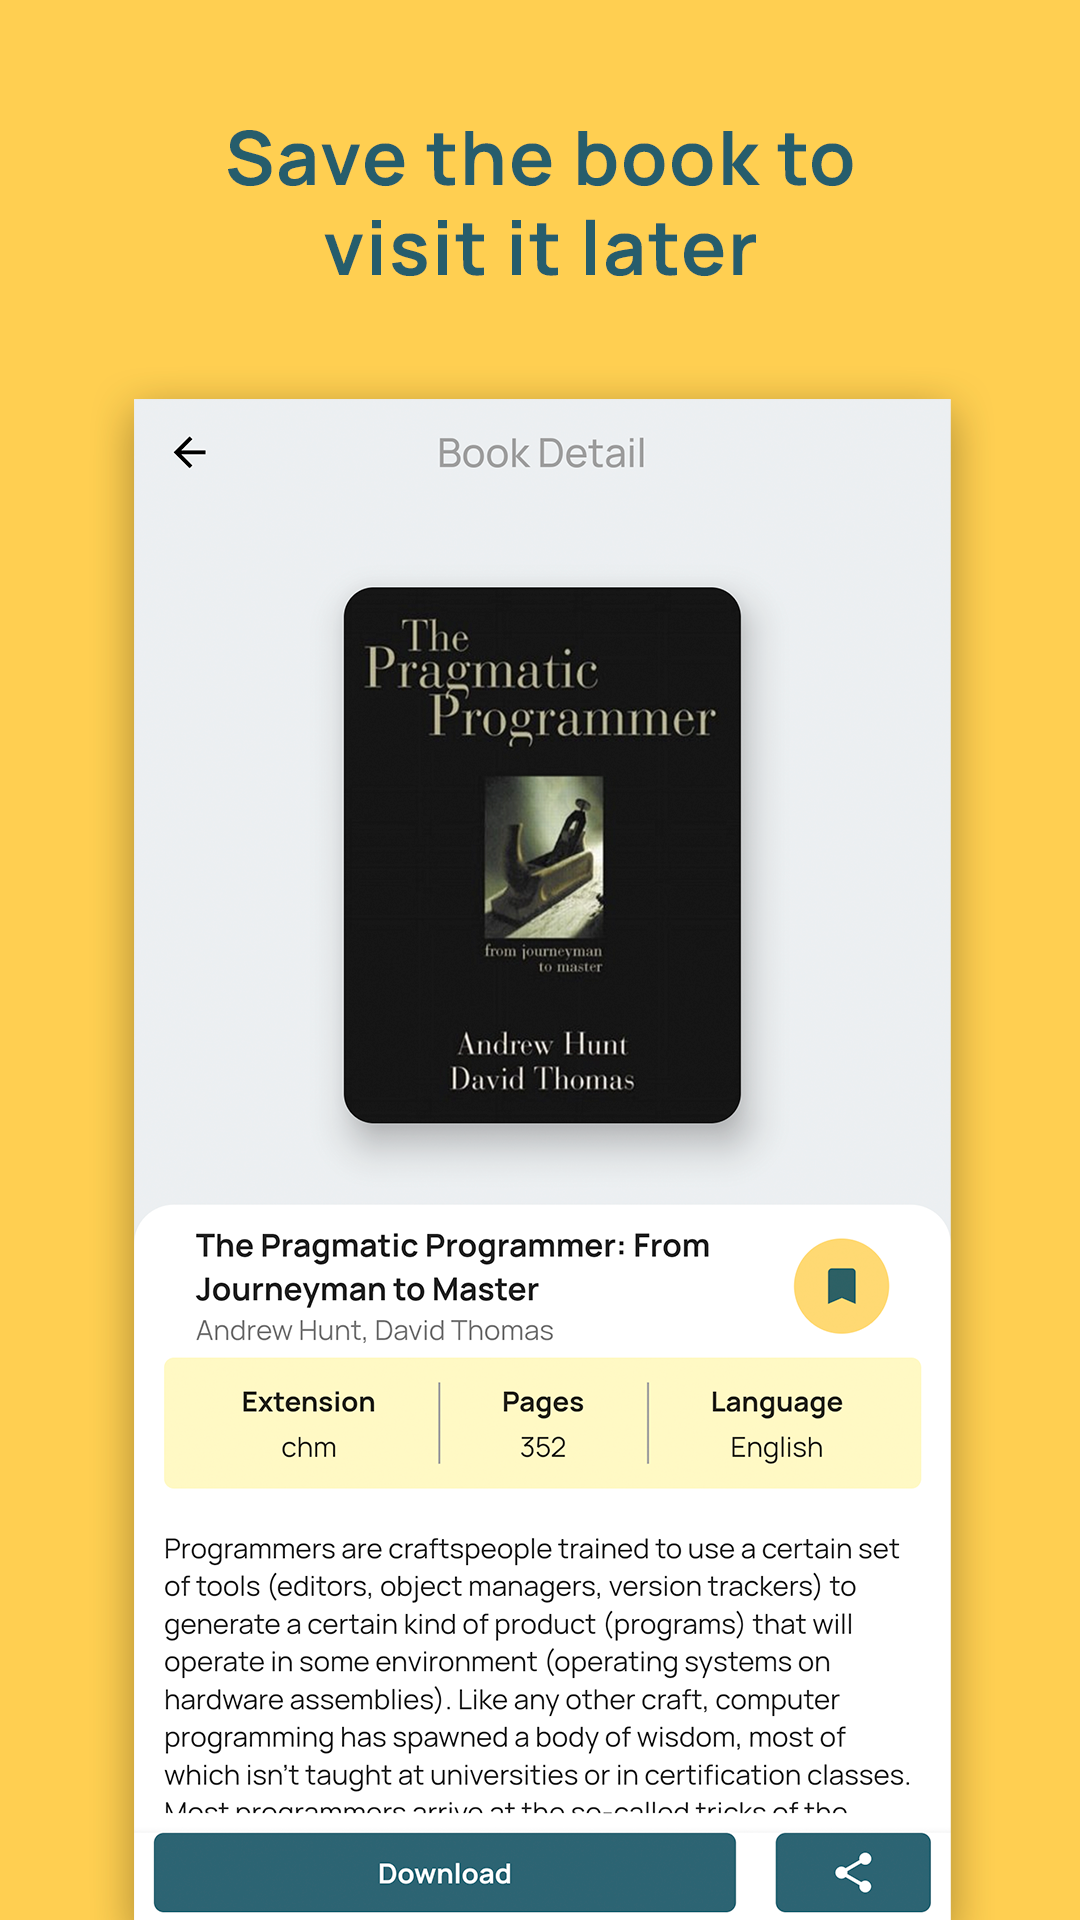 A Mobile Application to Download Books In Flutter